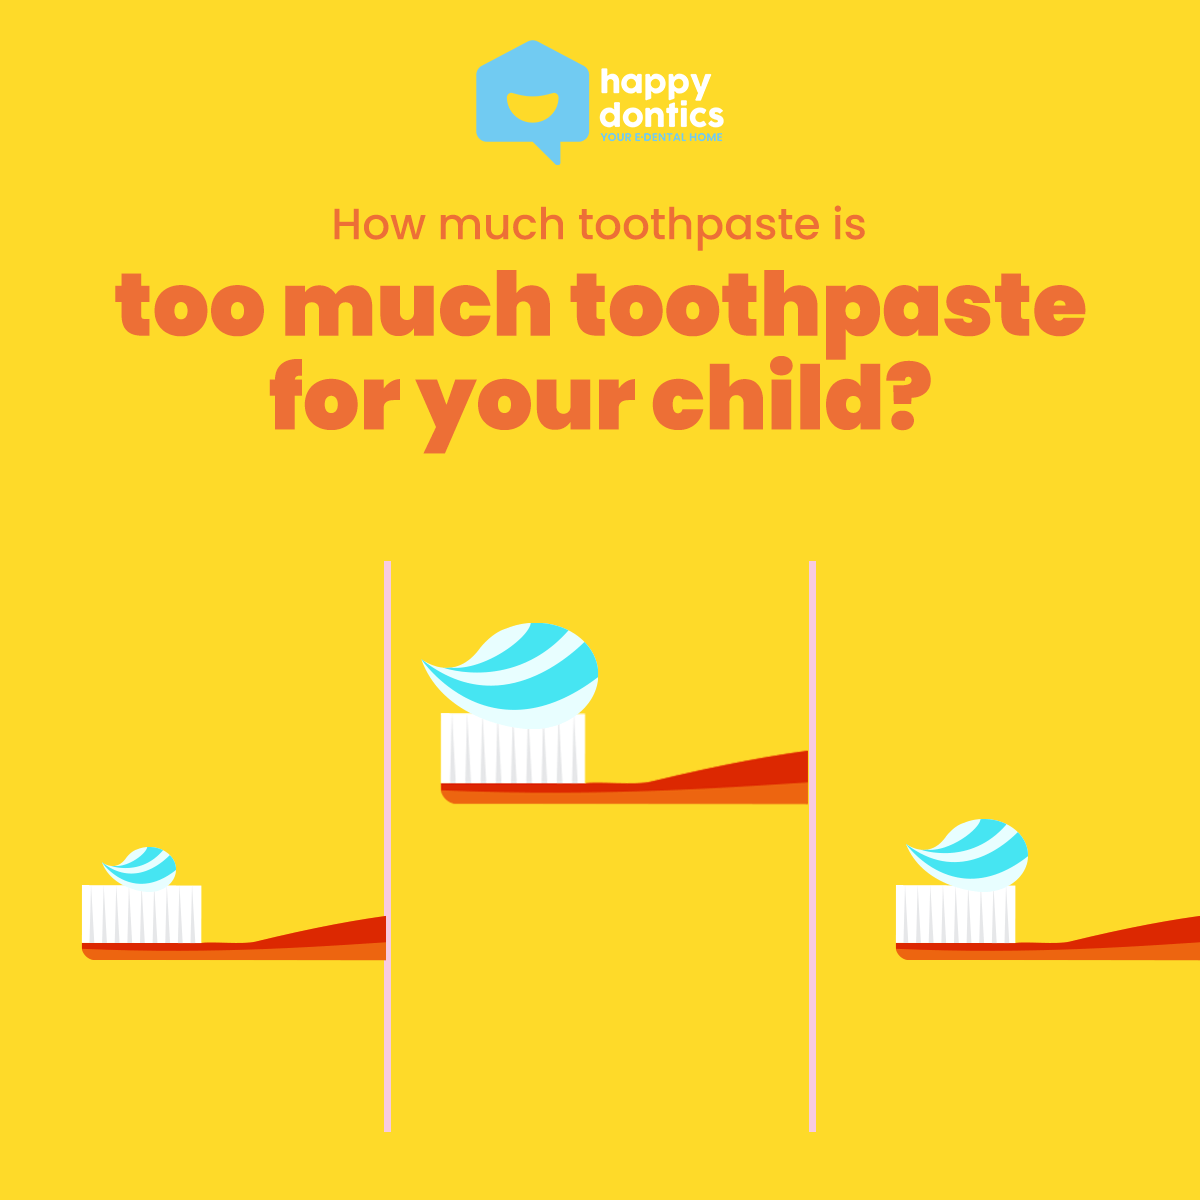 How much toothpaste is too much toothpaste for your child?